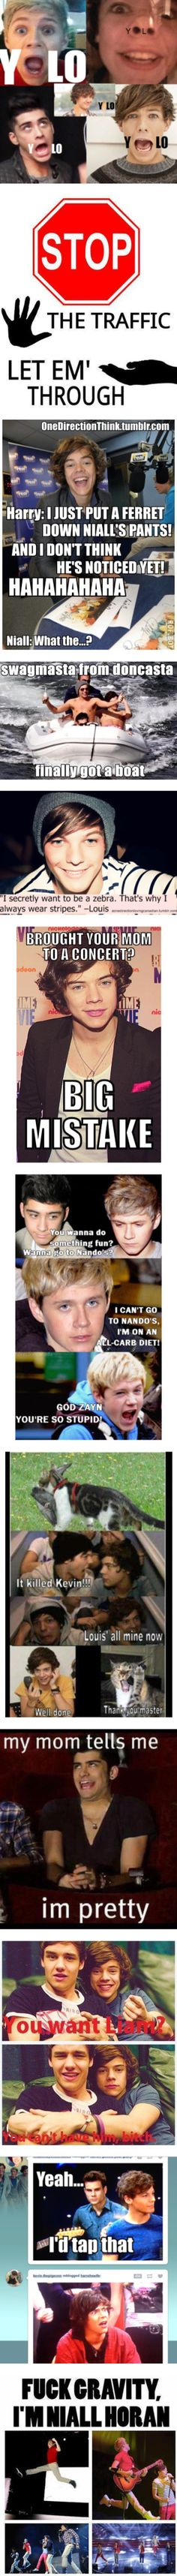 I feel like a carrot but this is so funny I don't care haha